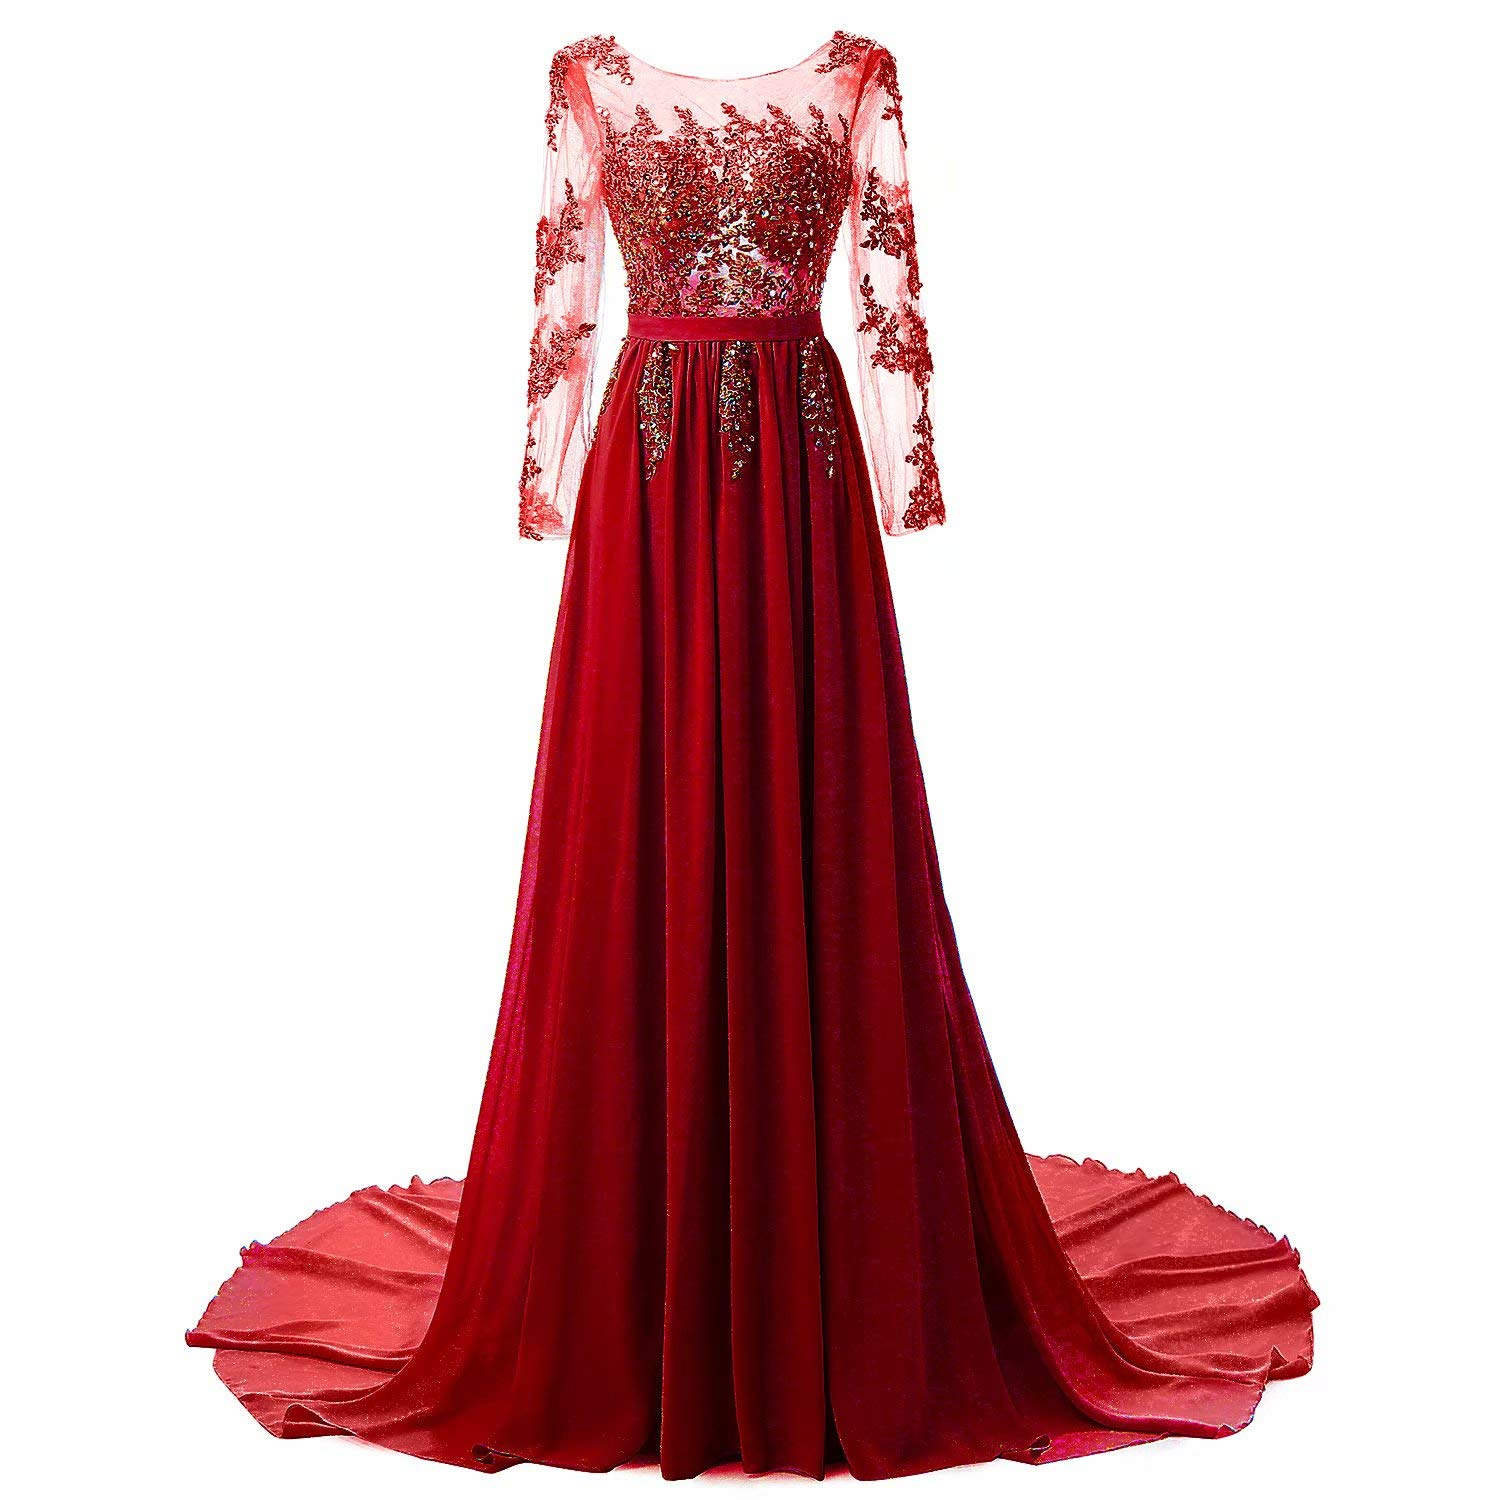 Red Honeywedding Women's Long Sequins Beaded Evening Dress with Long Sleeves Formal Prom Gown Dresses